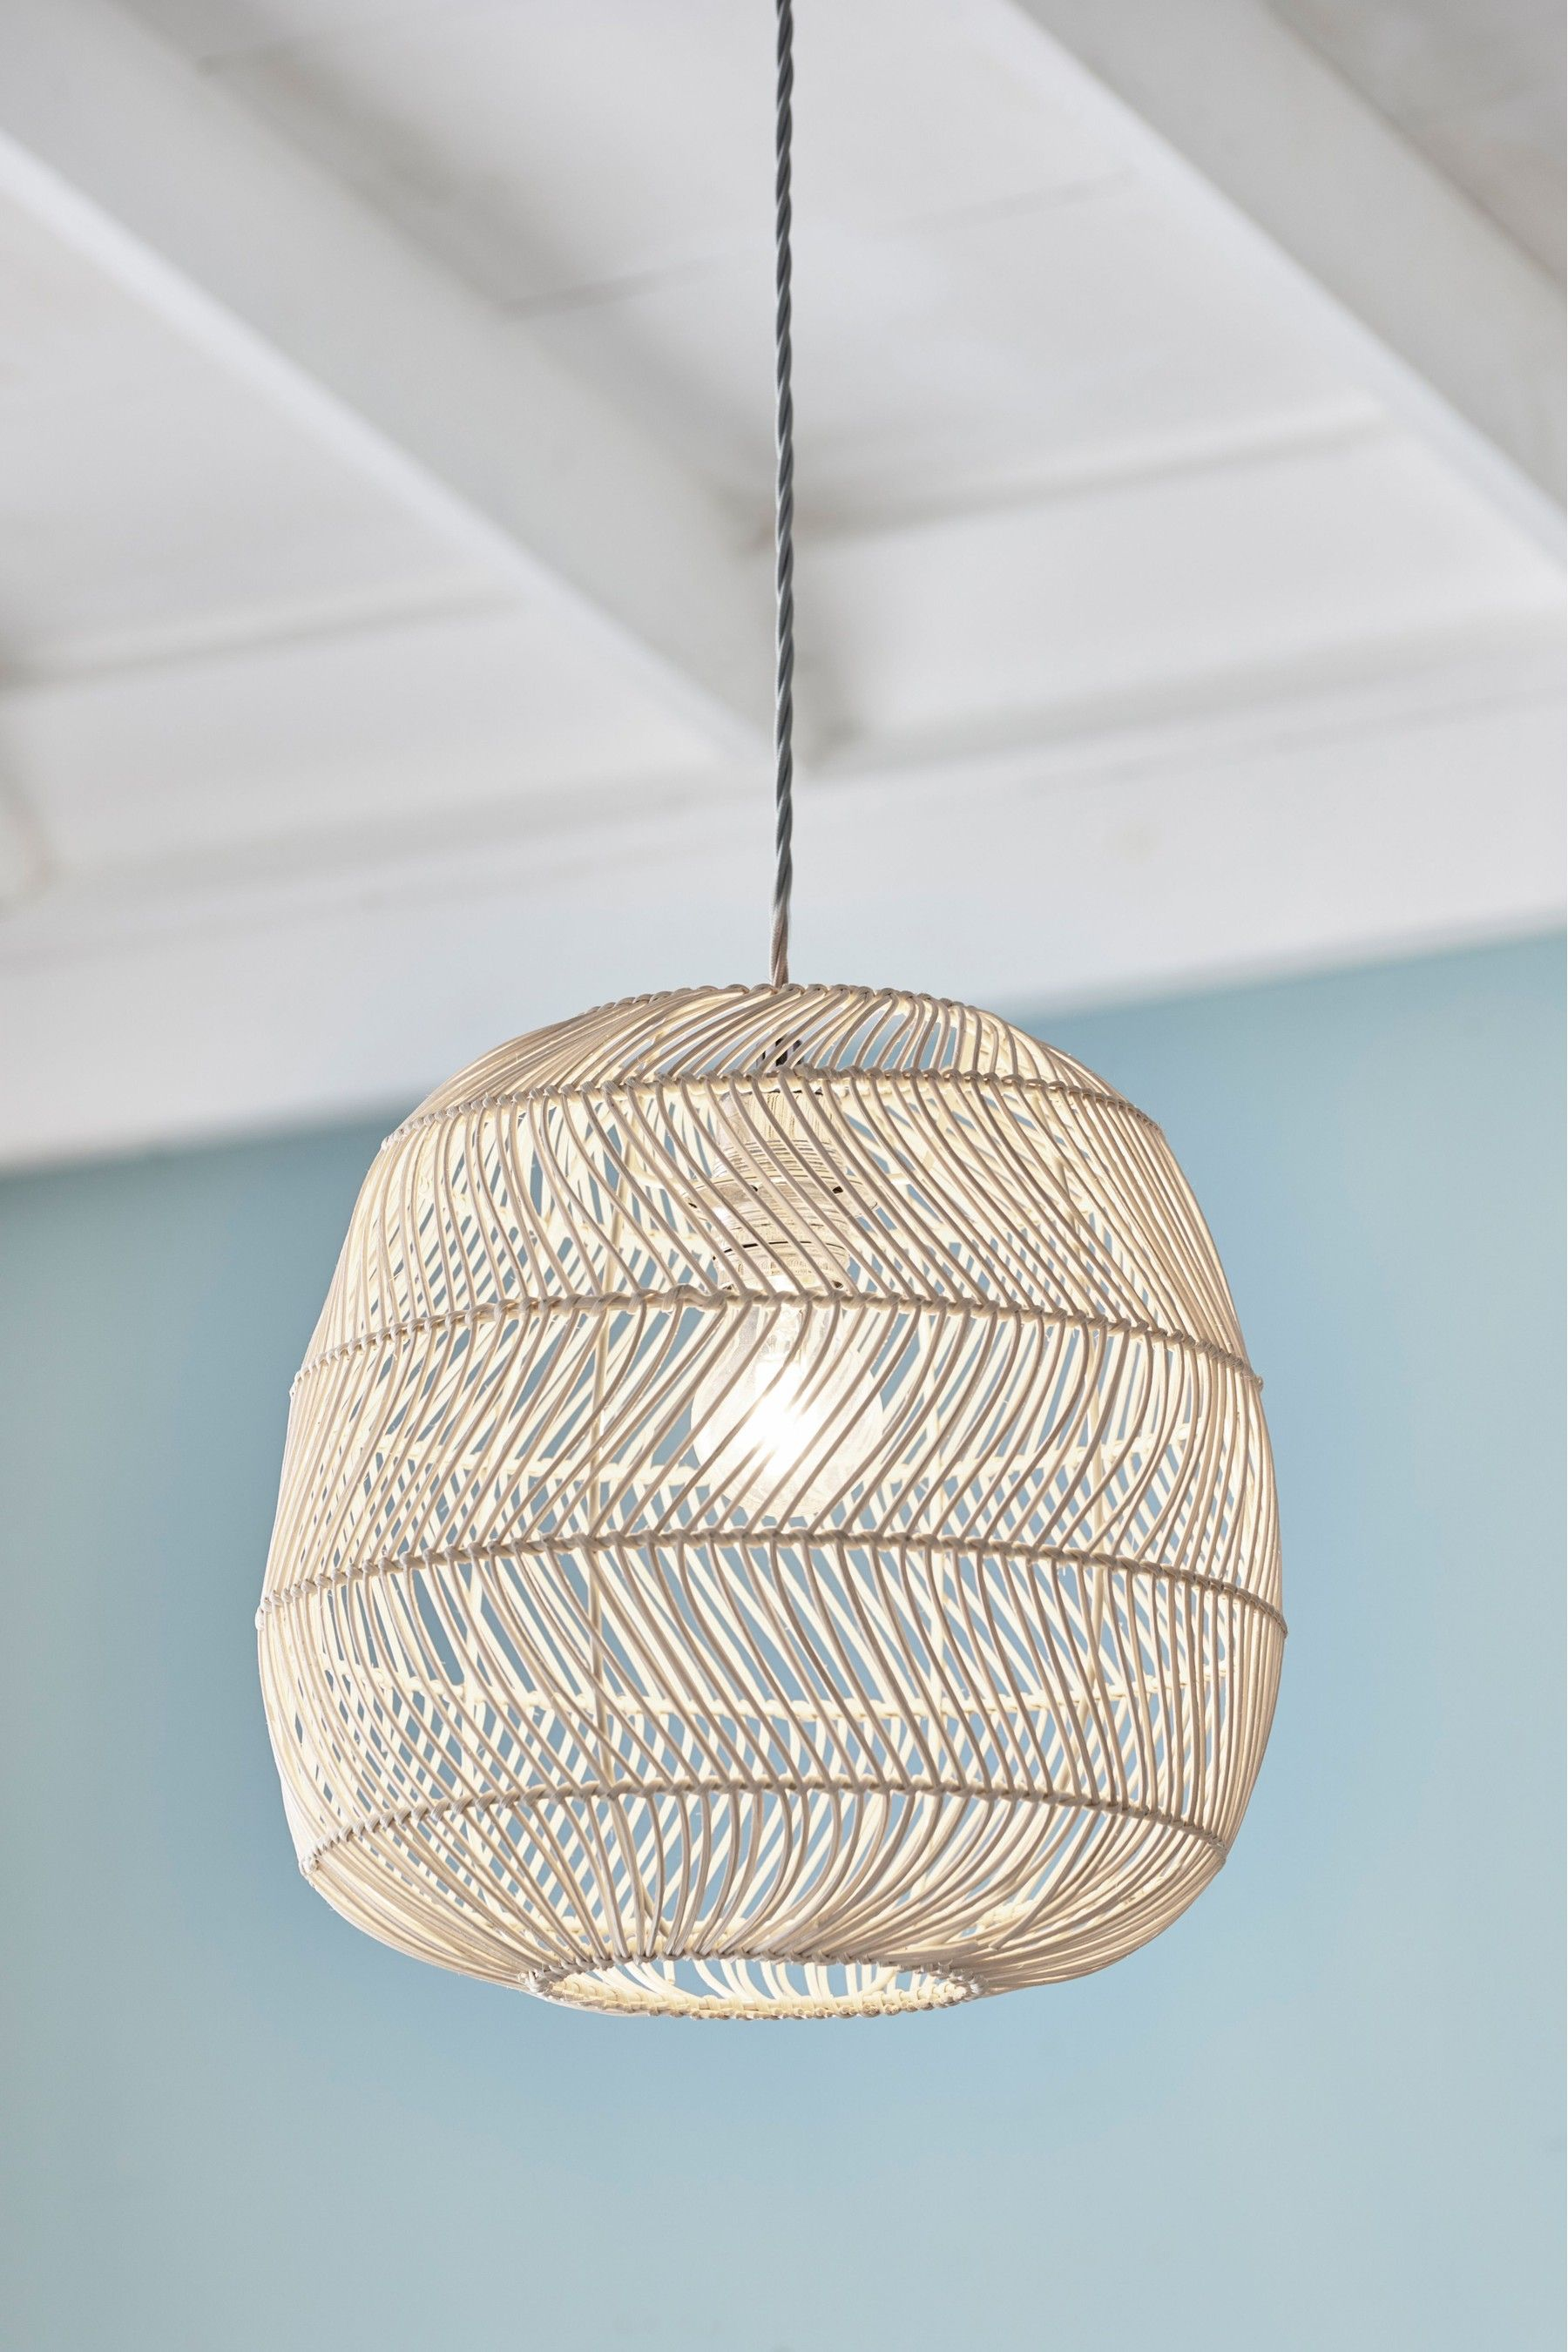 Next Tahiti Easy Fit Shade Natural In 2020 Bedroom Light Fittings Ceiling Lamp Shades Bedroom Ceiling Light